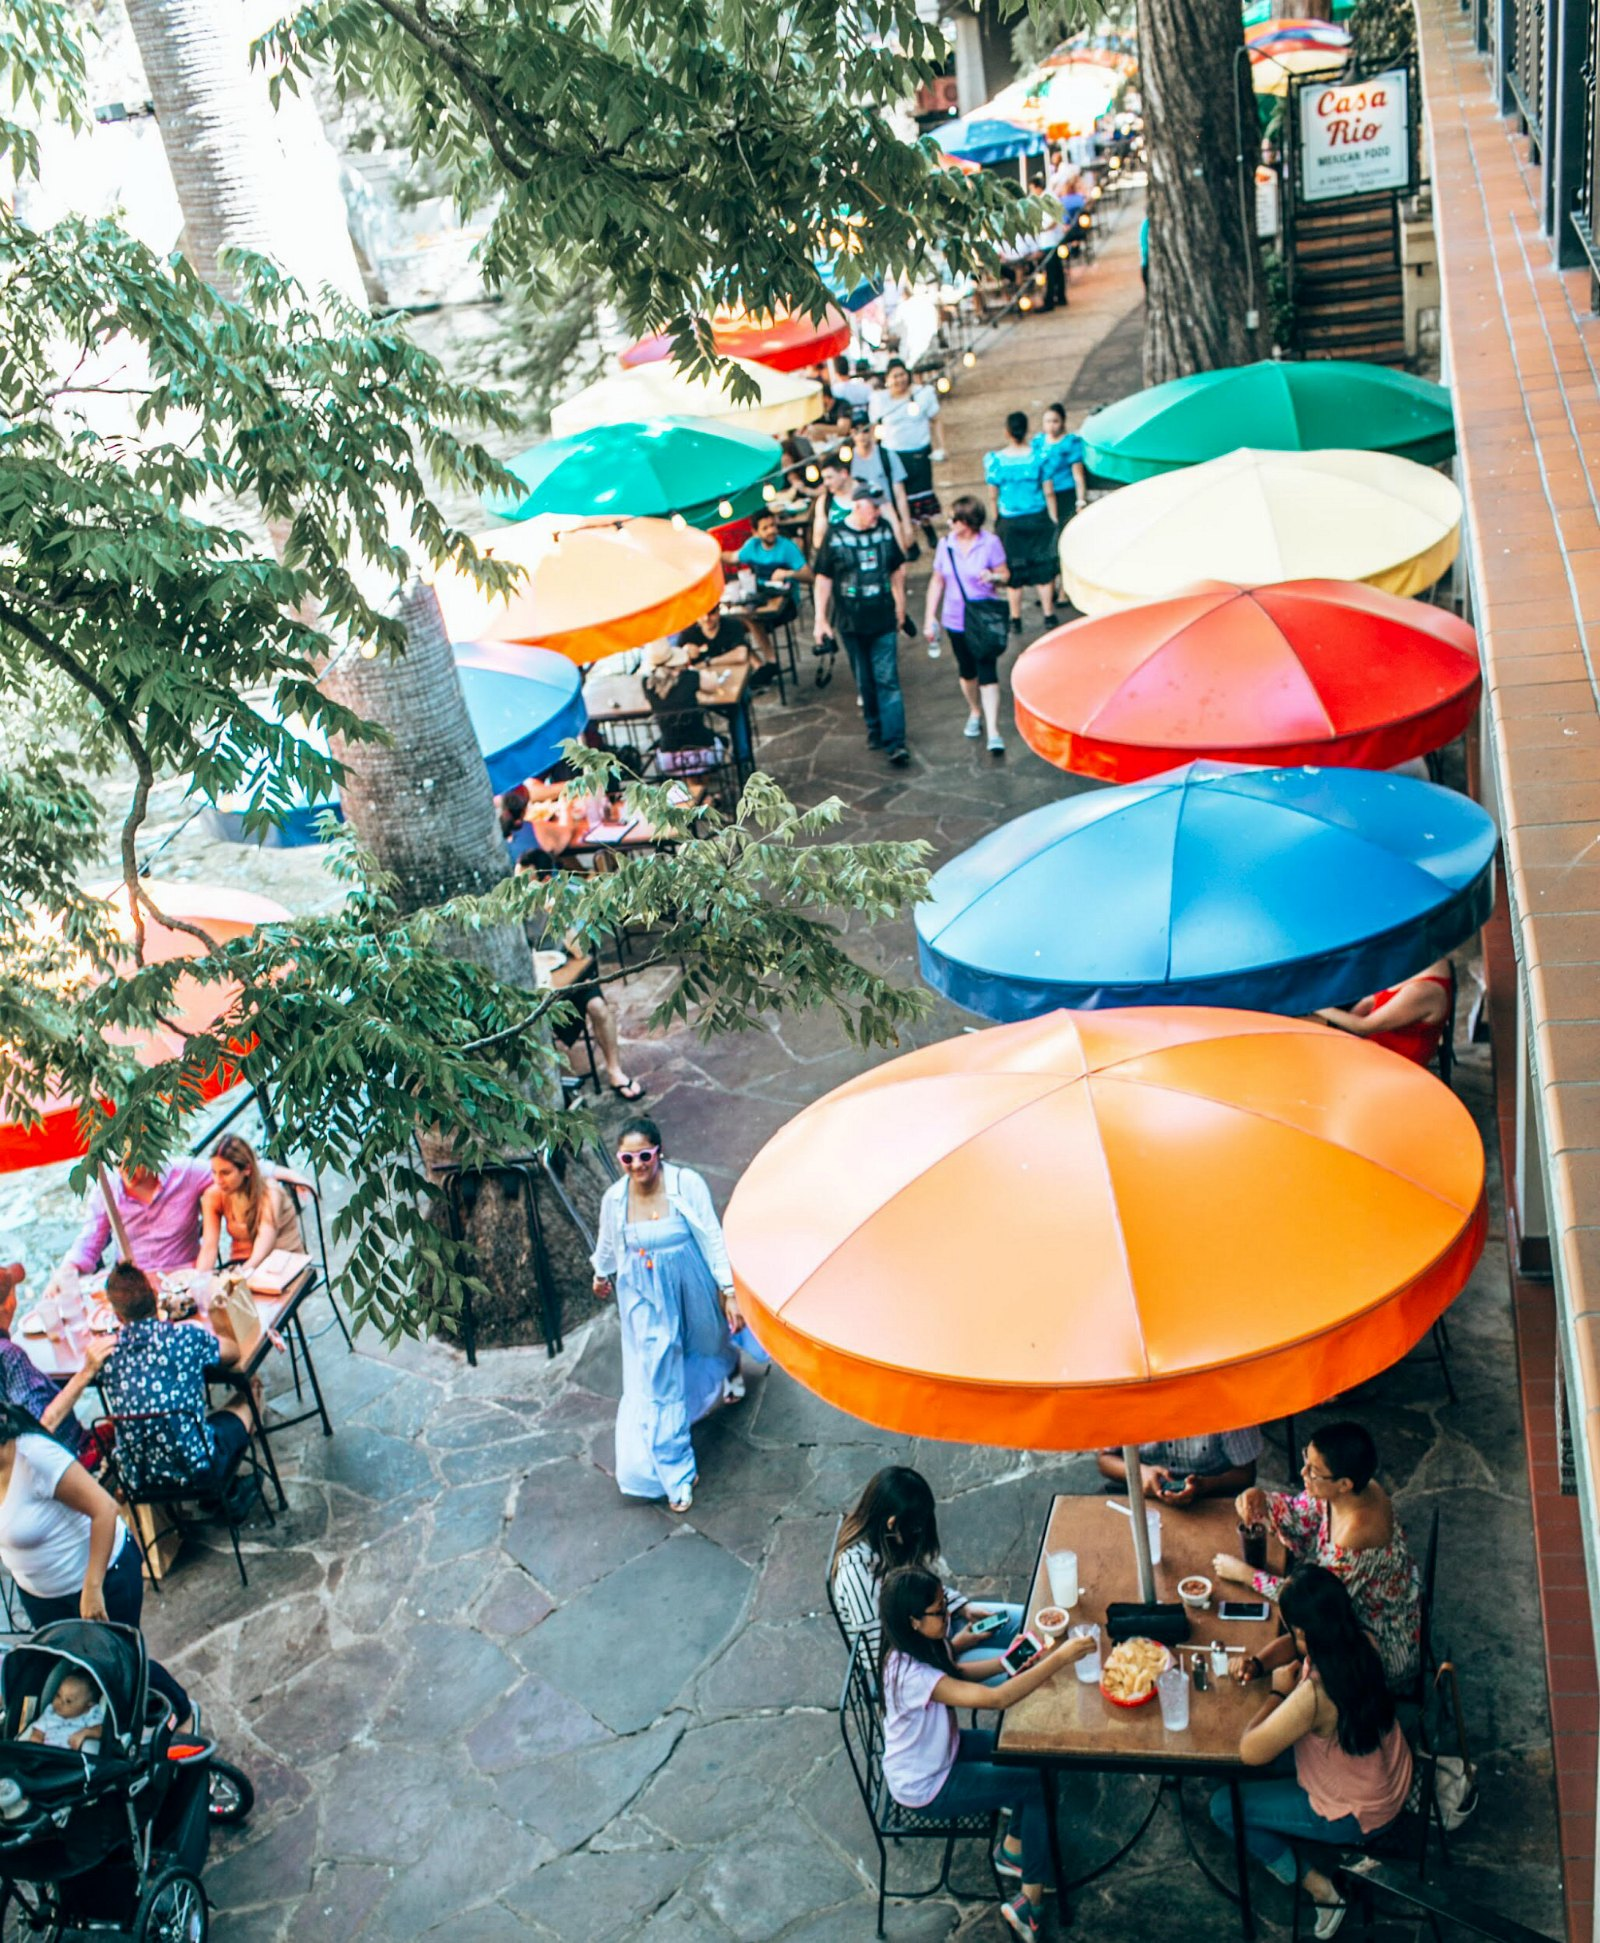 Casa Rio San Antonio Texas - A Day in Austin and San Antonio -Attractions, Where to Eat and What to Wear featured by popular Ohio travel blogger, Dreaming Loud